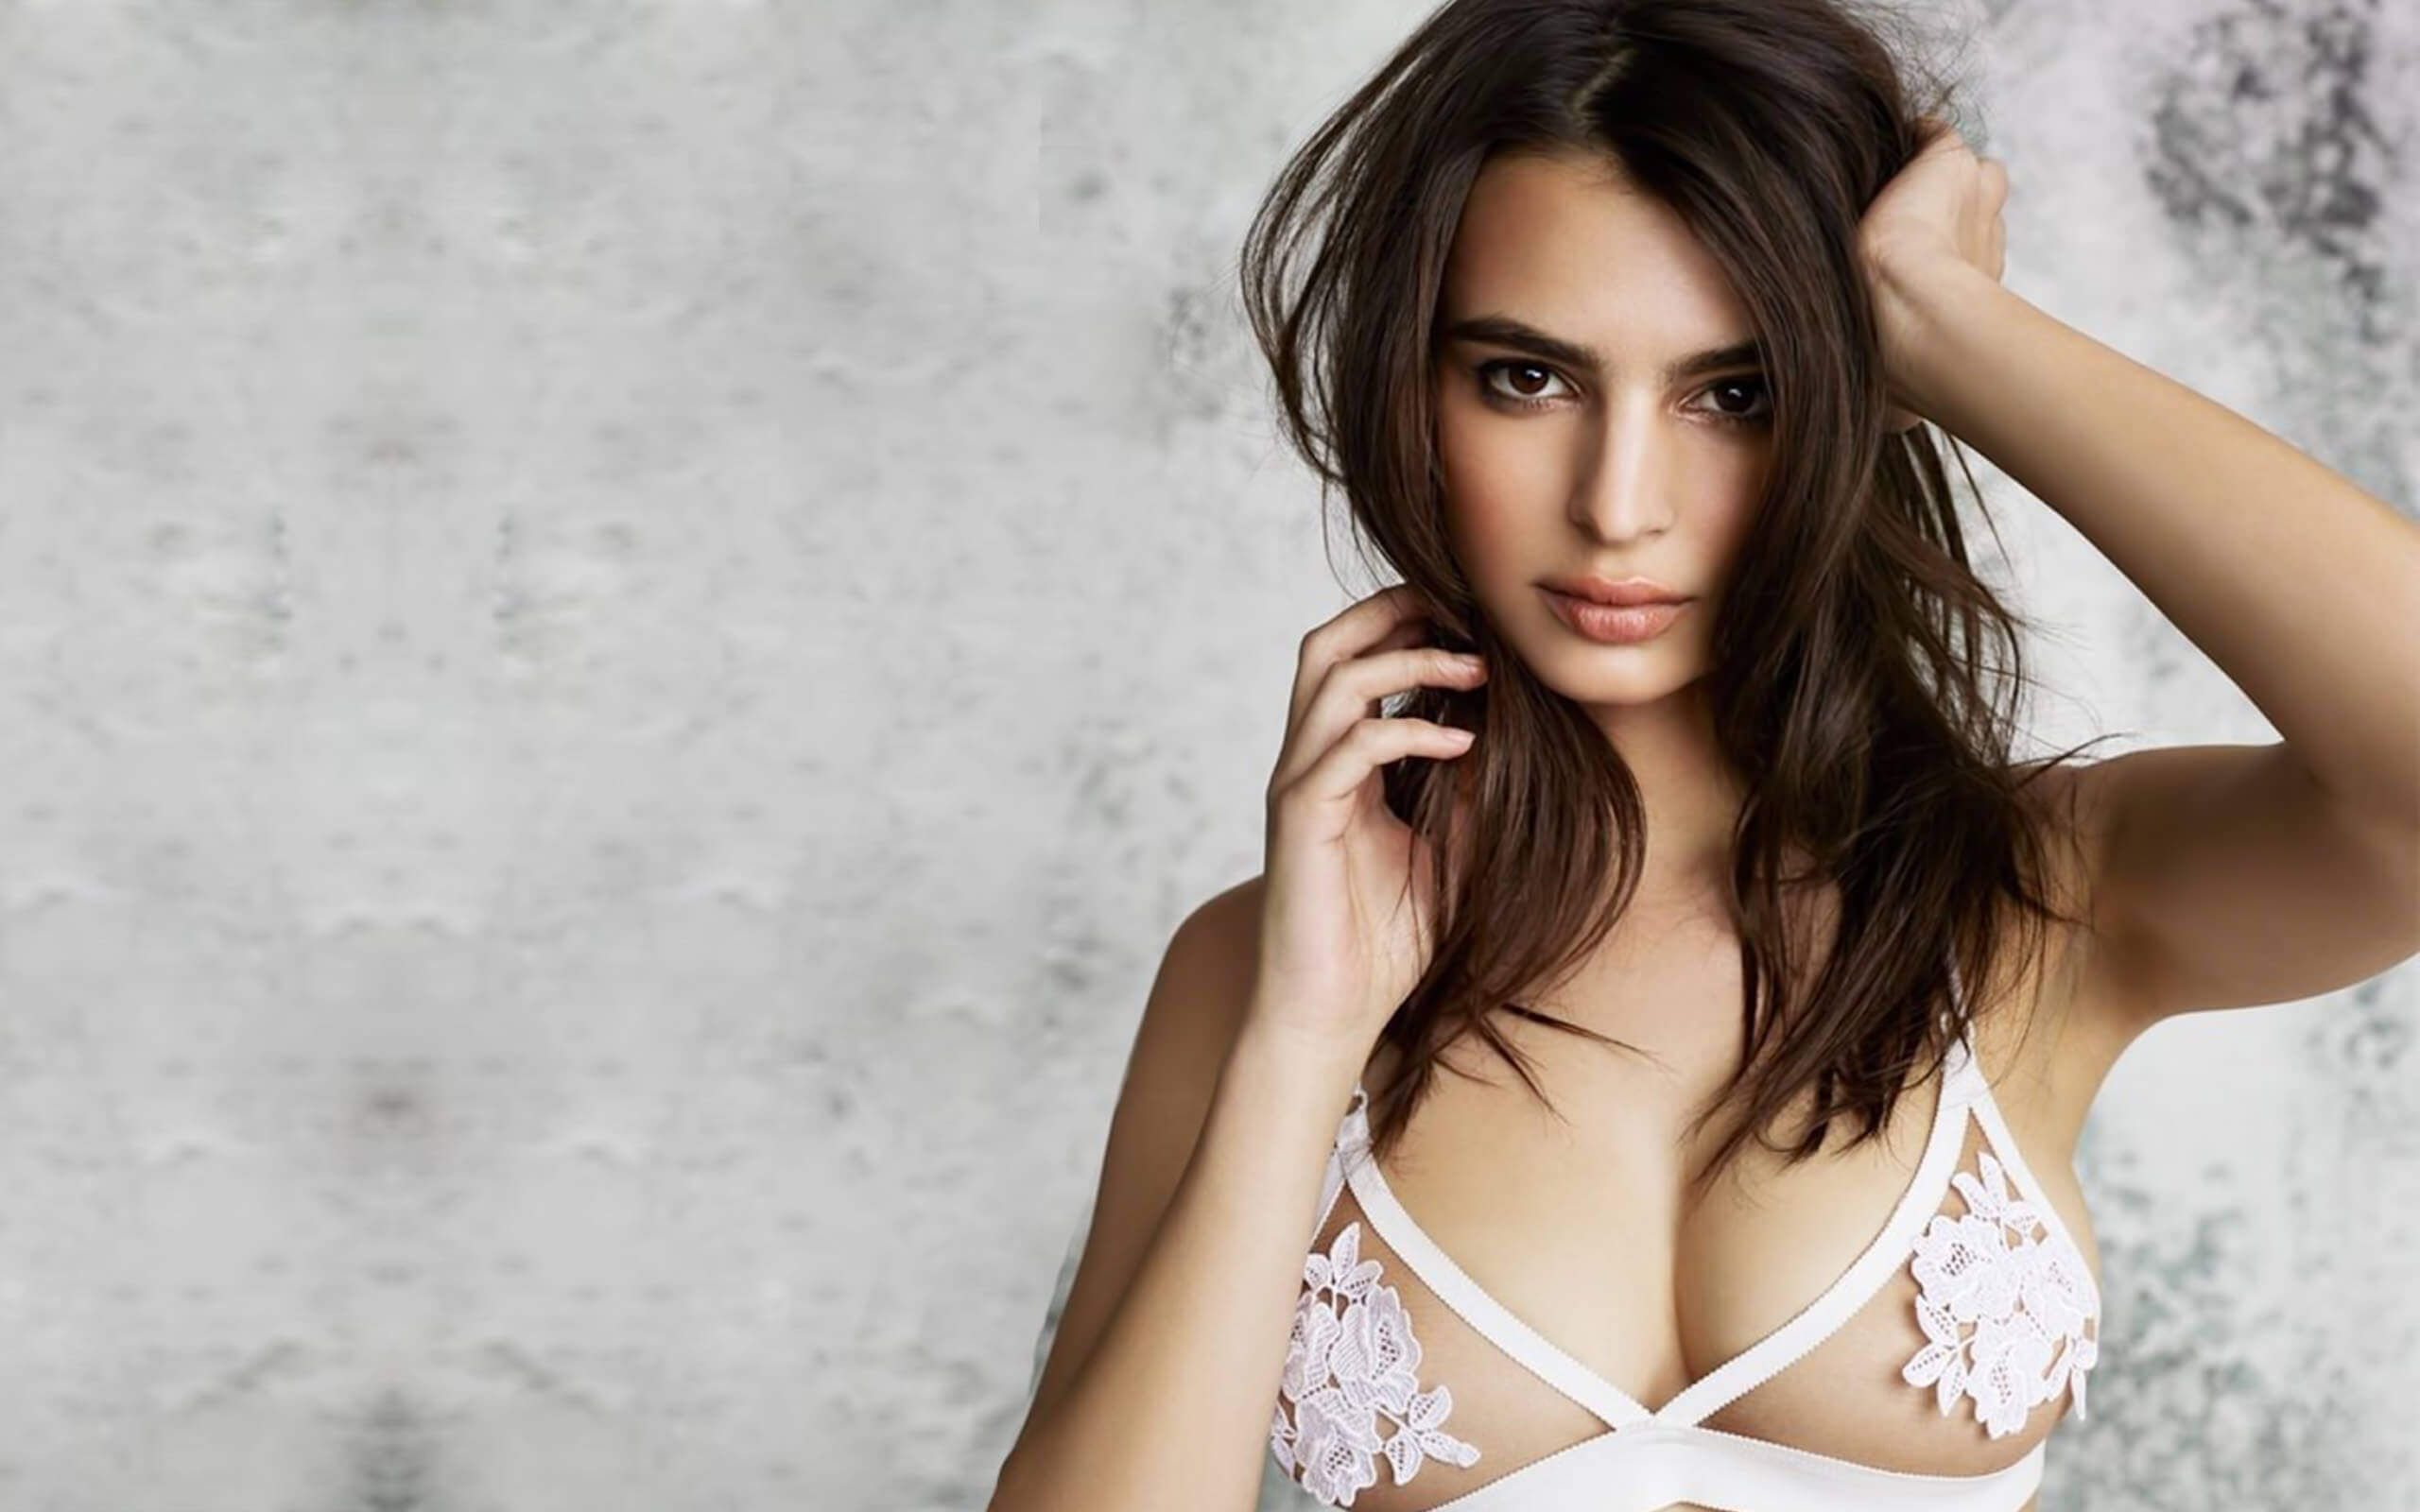 emily ratajkowski | home » models » hot model emily ratajkowski hd